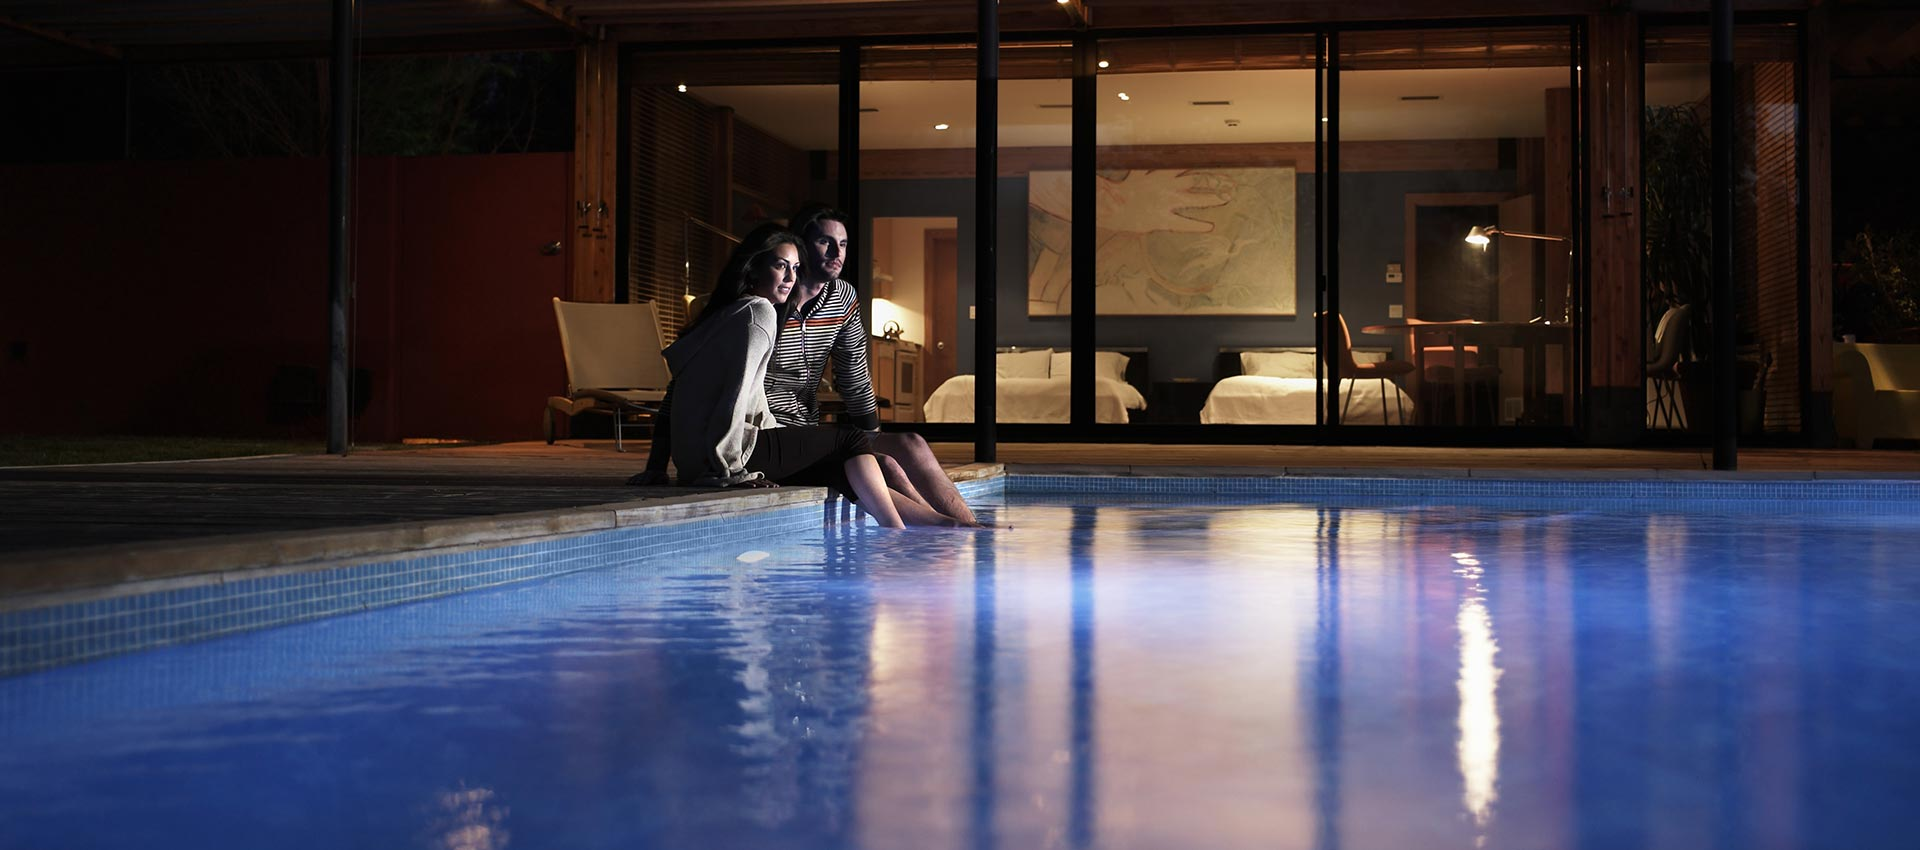 Couple dipping their feet into the pool at night